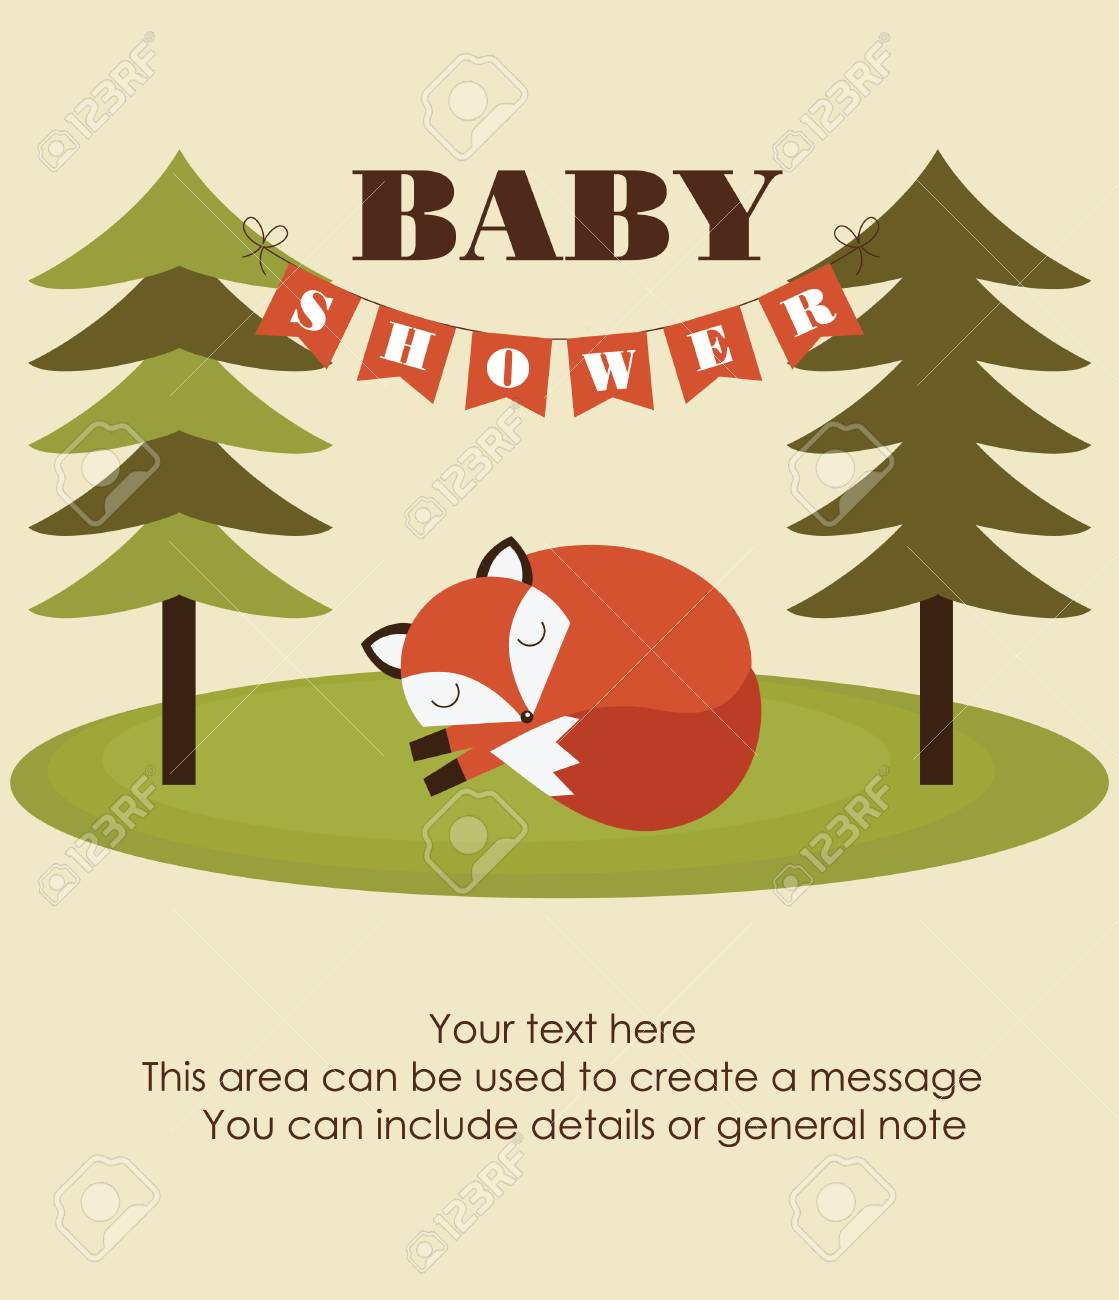 Forest Baby Shower Theme. Vector Illustration Stock Vector   26917531